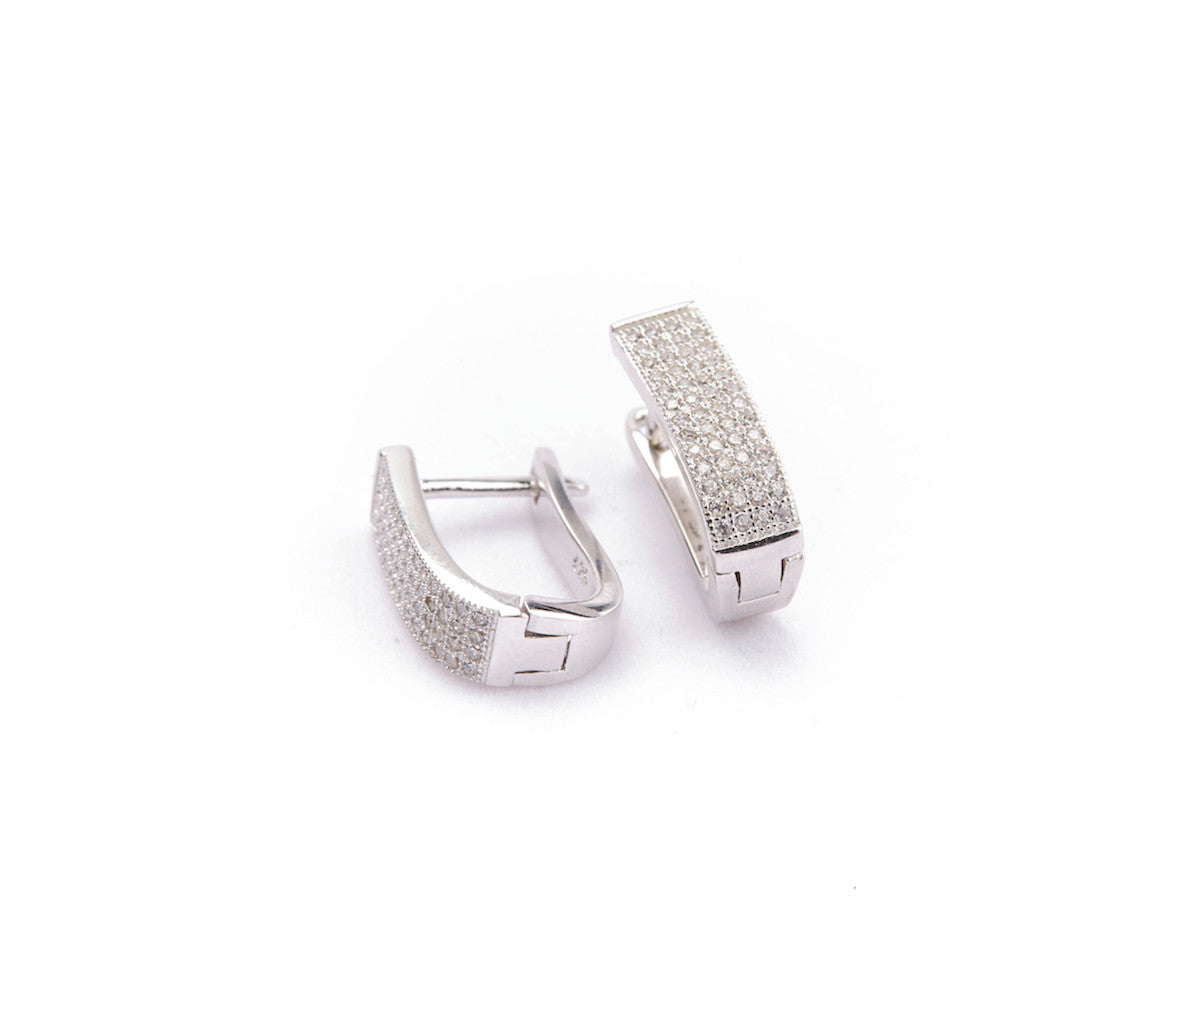 Silver Elongated Rectangular Huggies Earrings